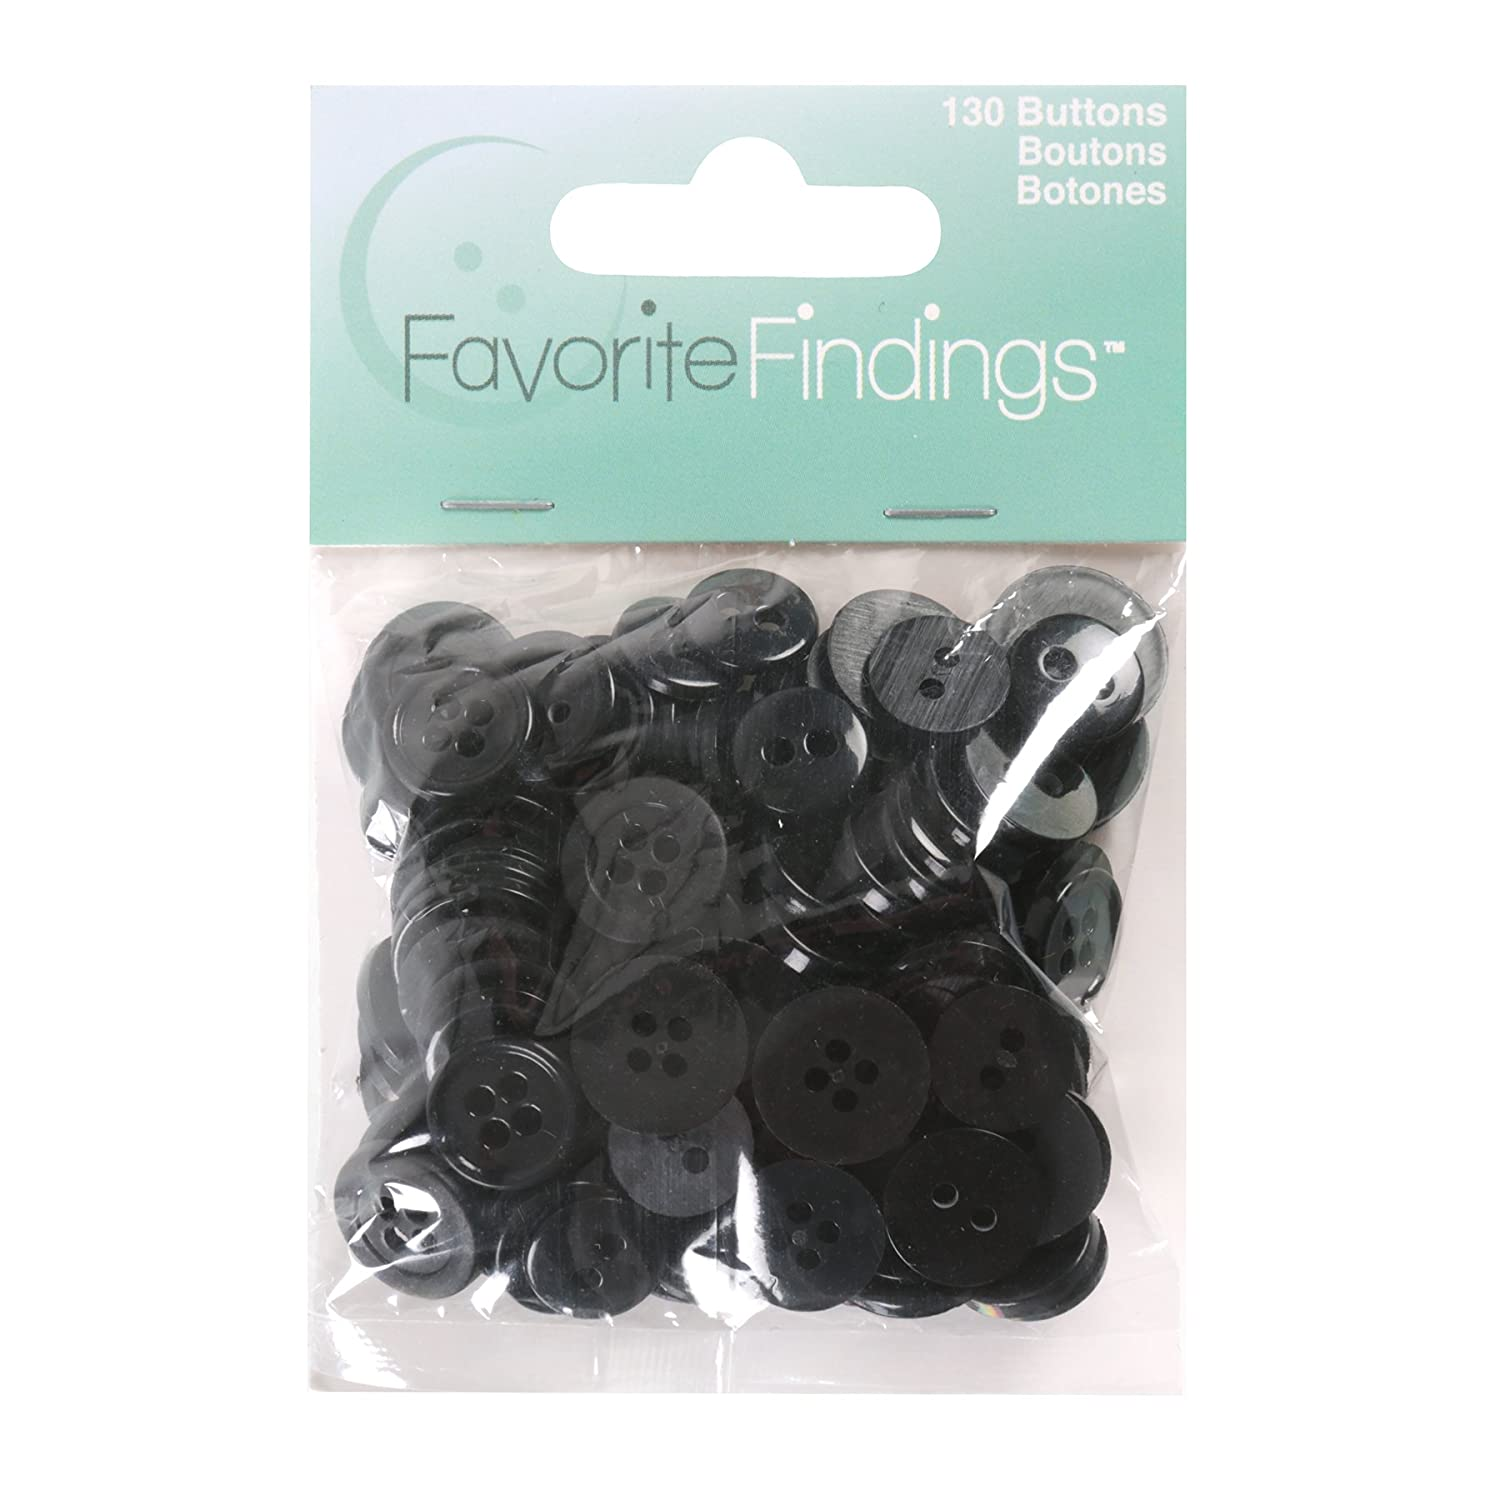 Blumenthal Lansing Favorite Findings Assorted Buttons for Arts and Crafts Black 100 Piece